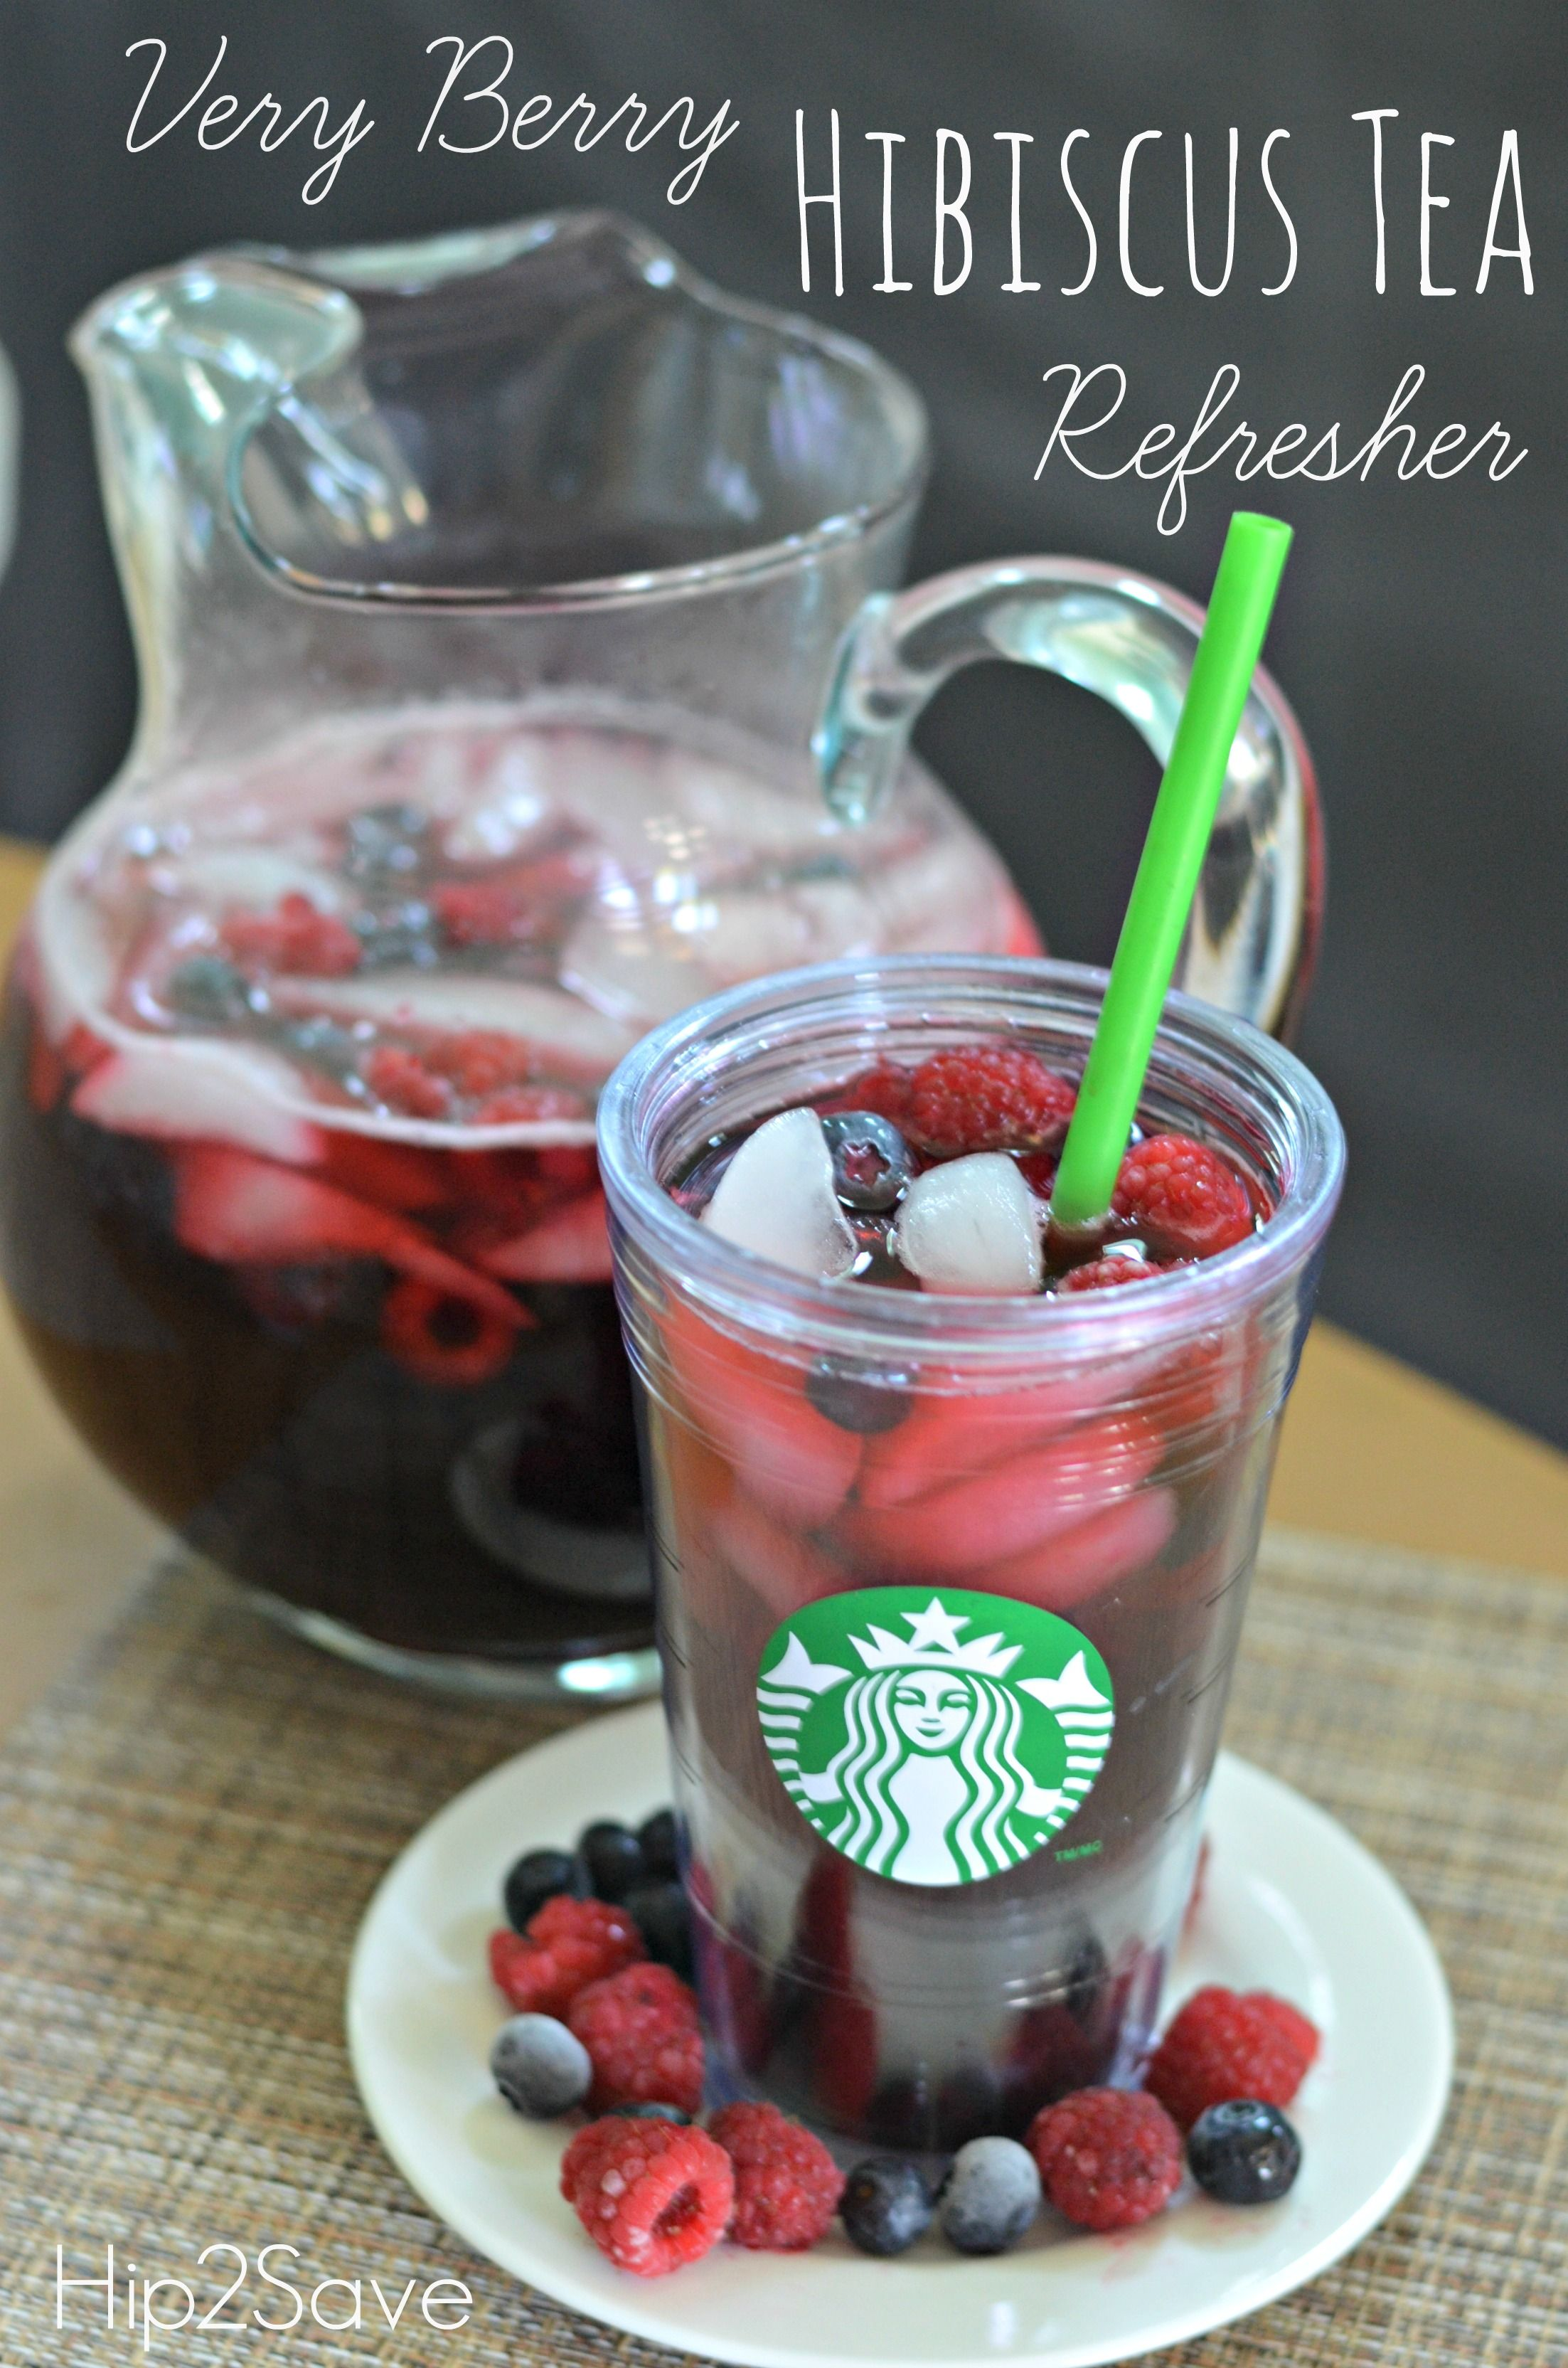 Very Berry Hibiscus Tea Refresher Recipe All Recipes Hip2save